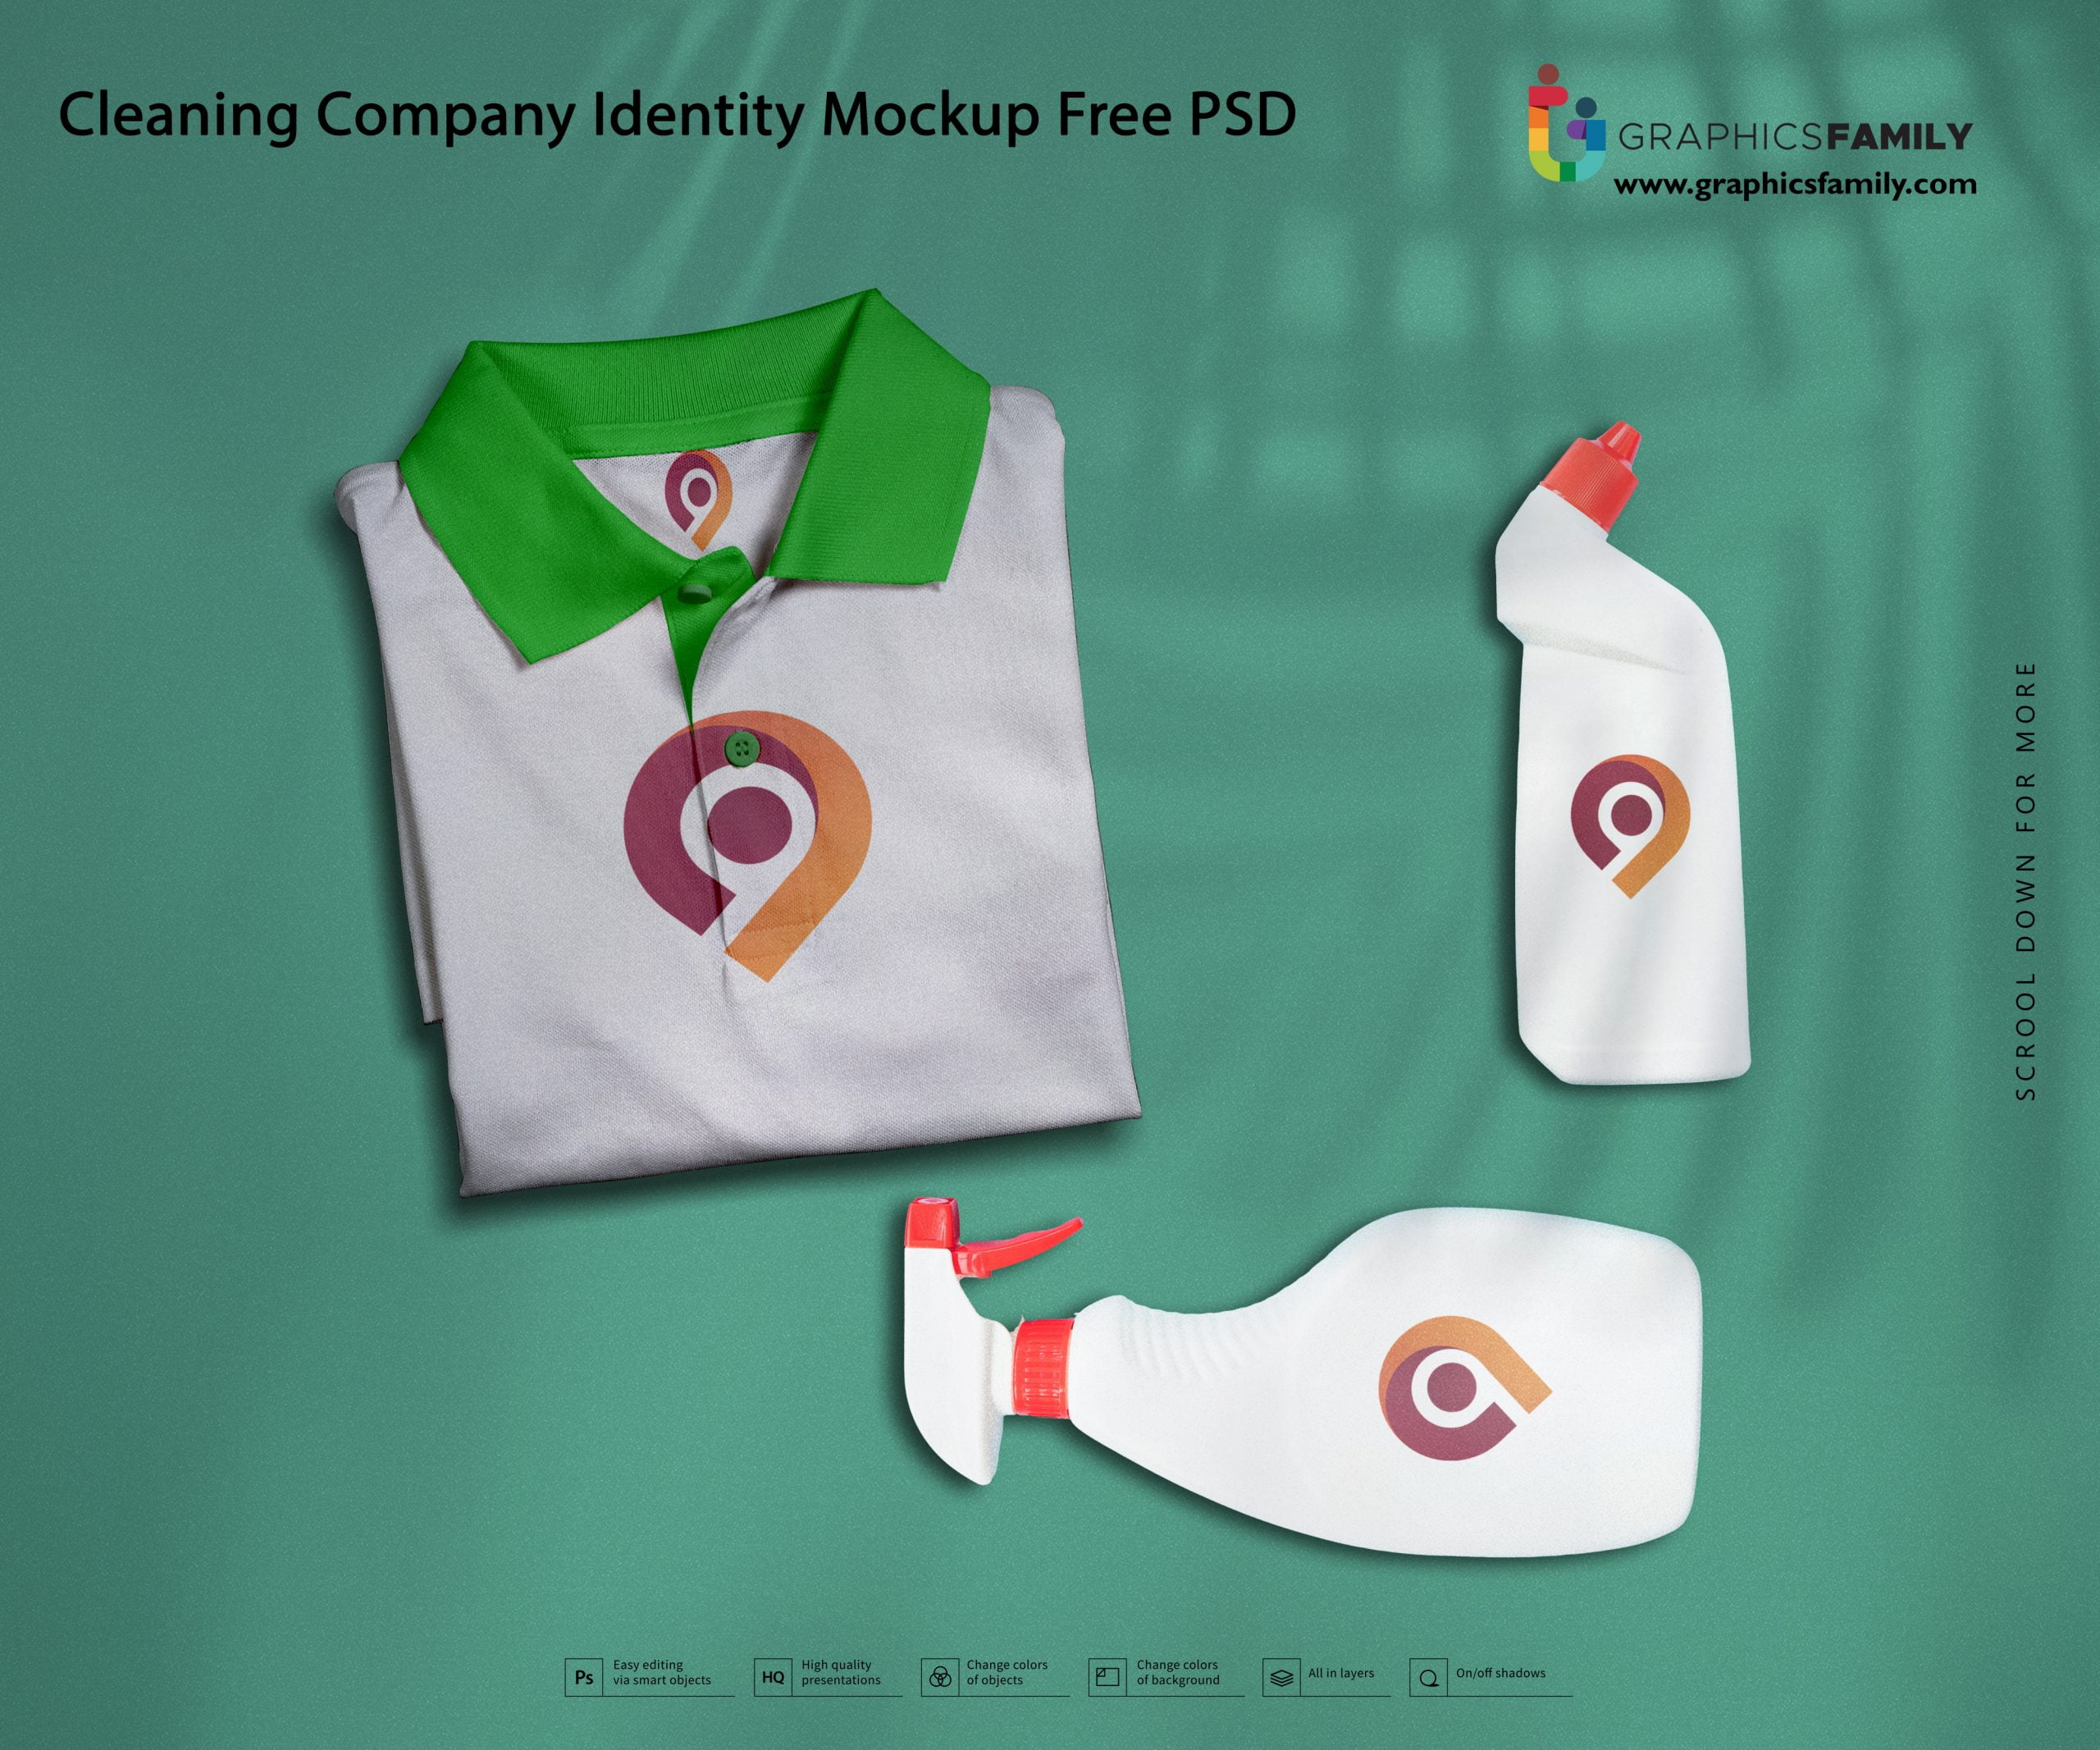 Cleaning Company Identity Mockup Free PSD Download